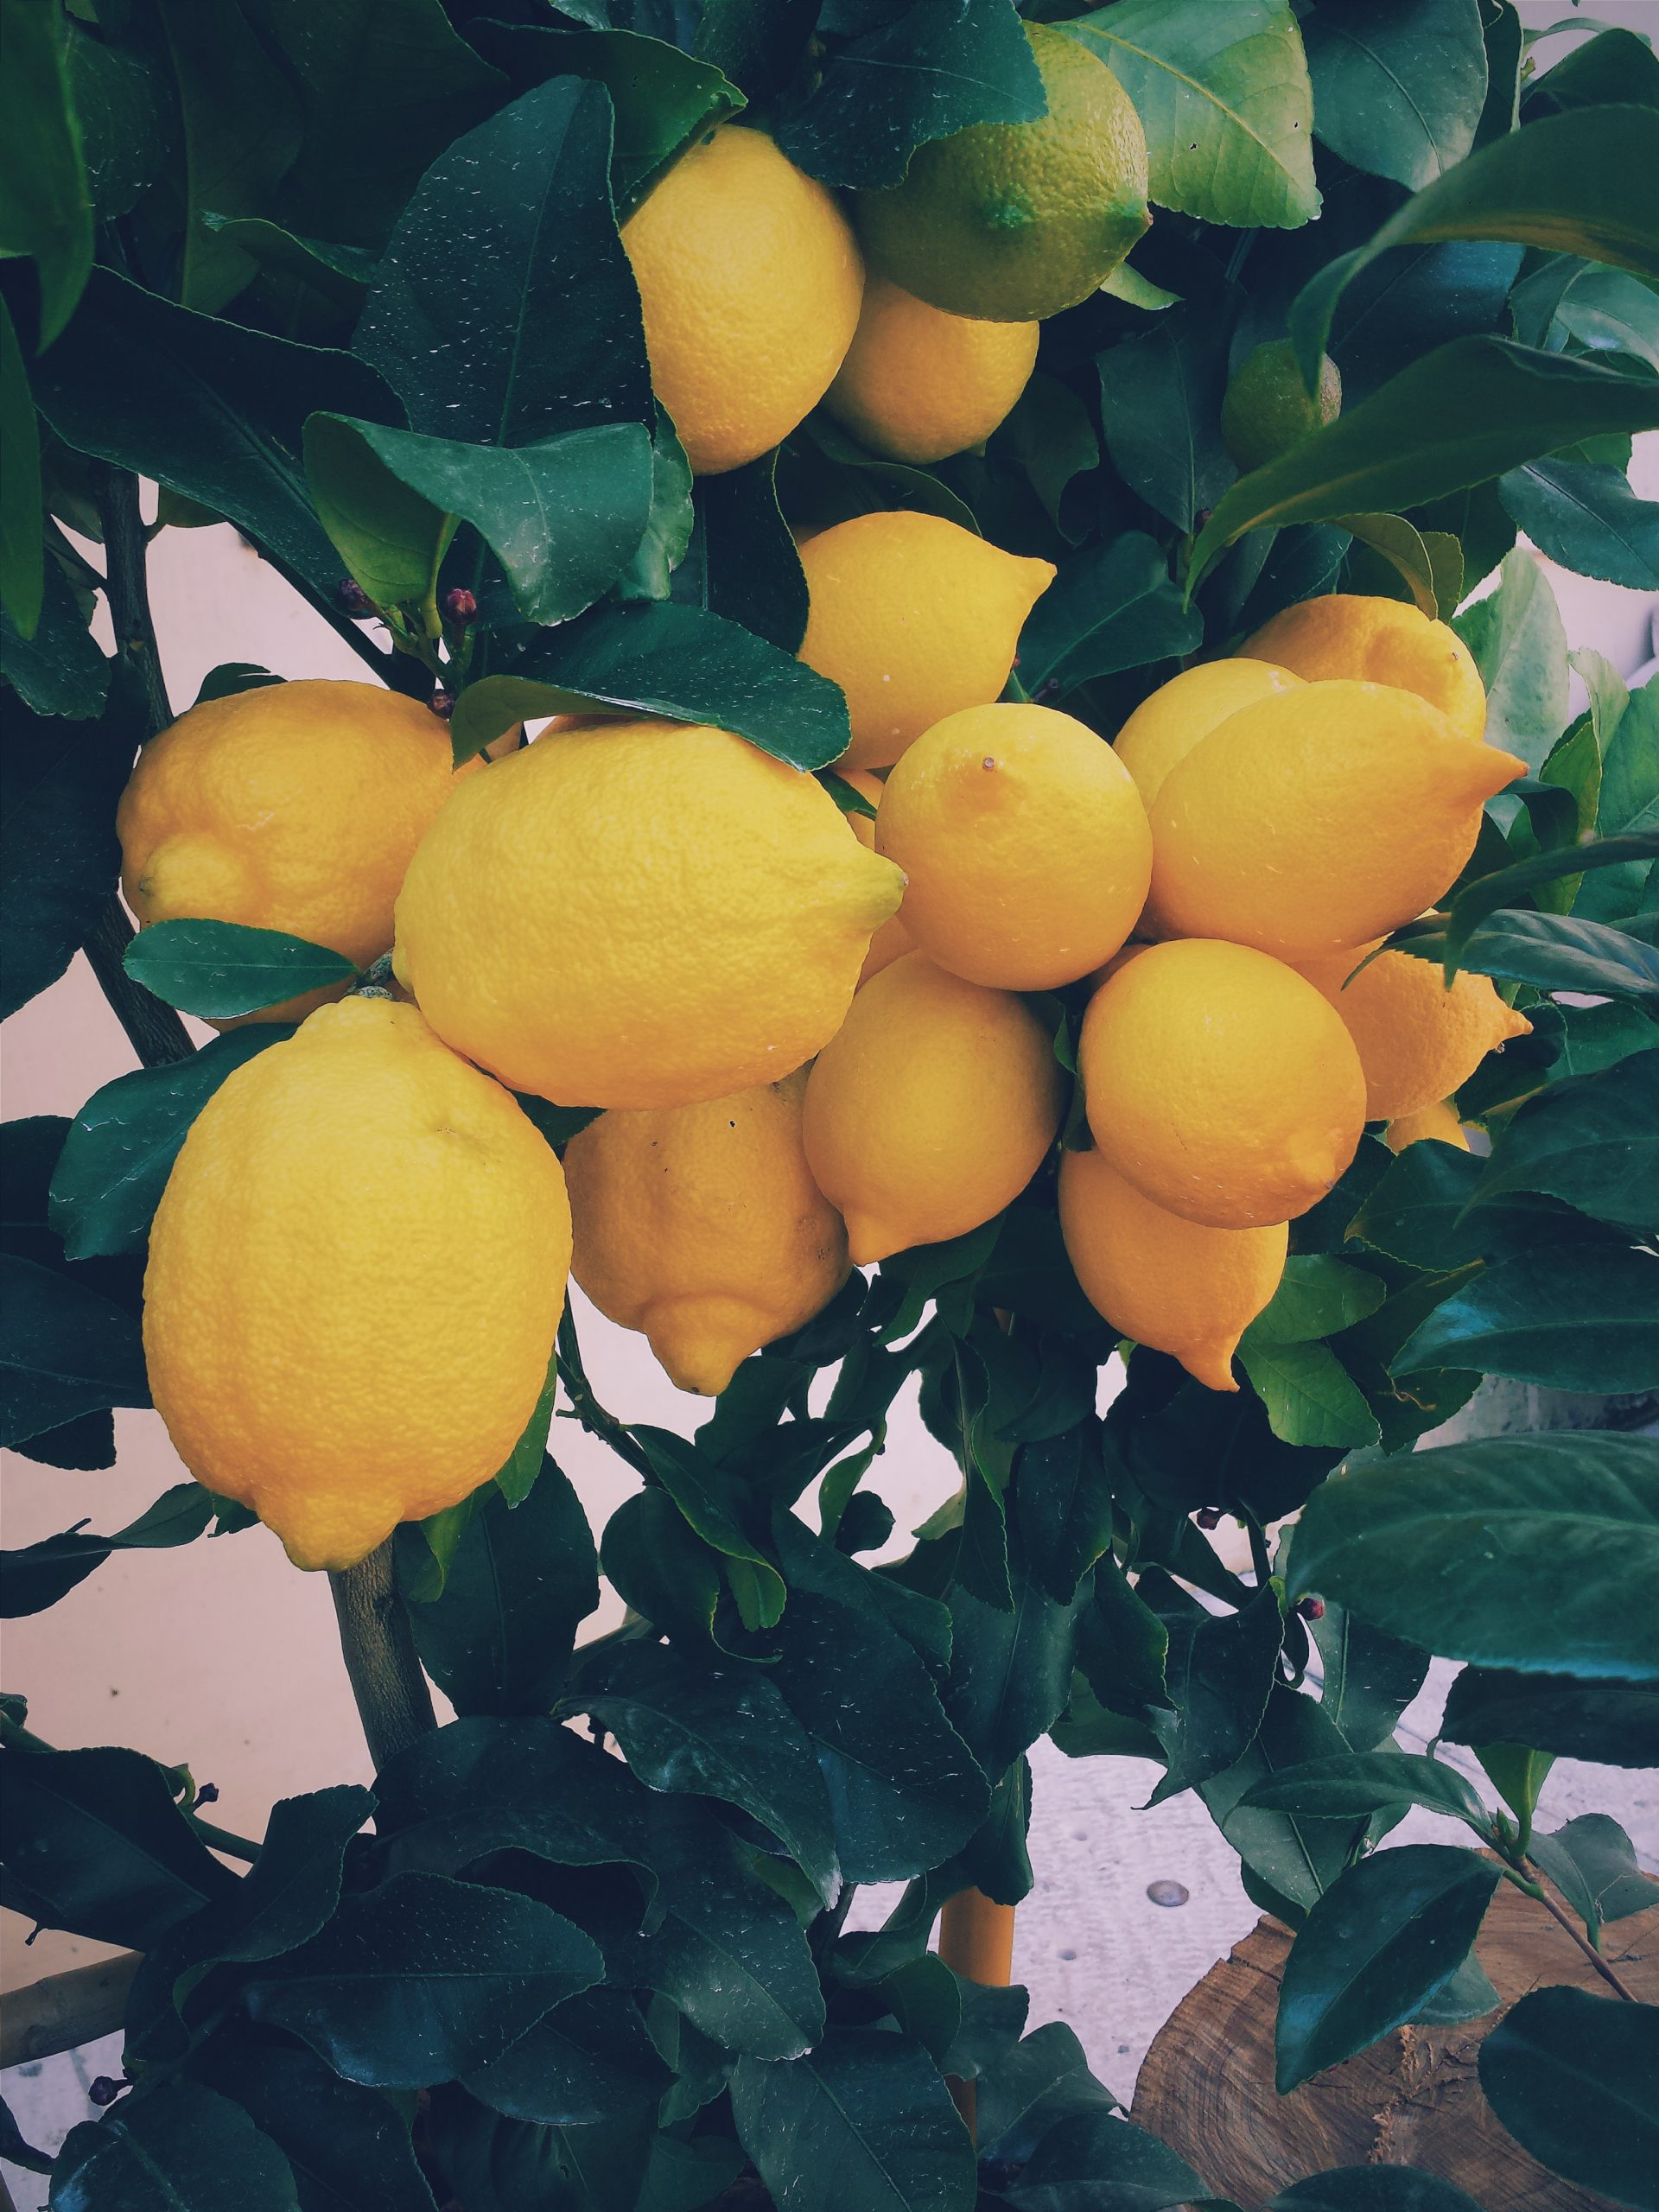 unsplash ernest porzi lemon peel candy